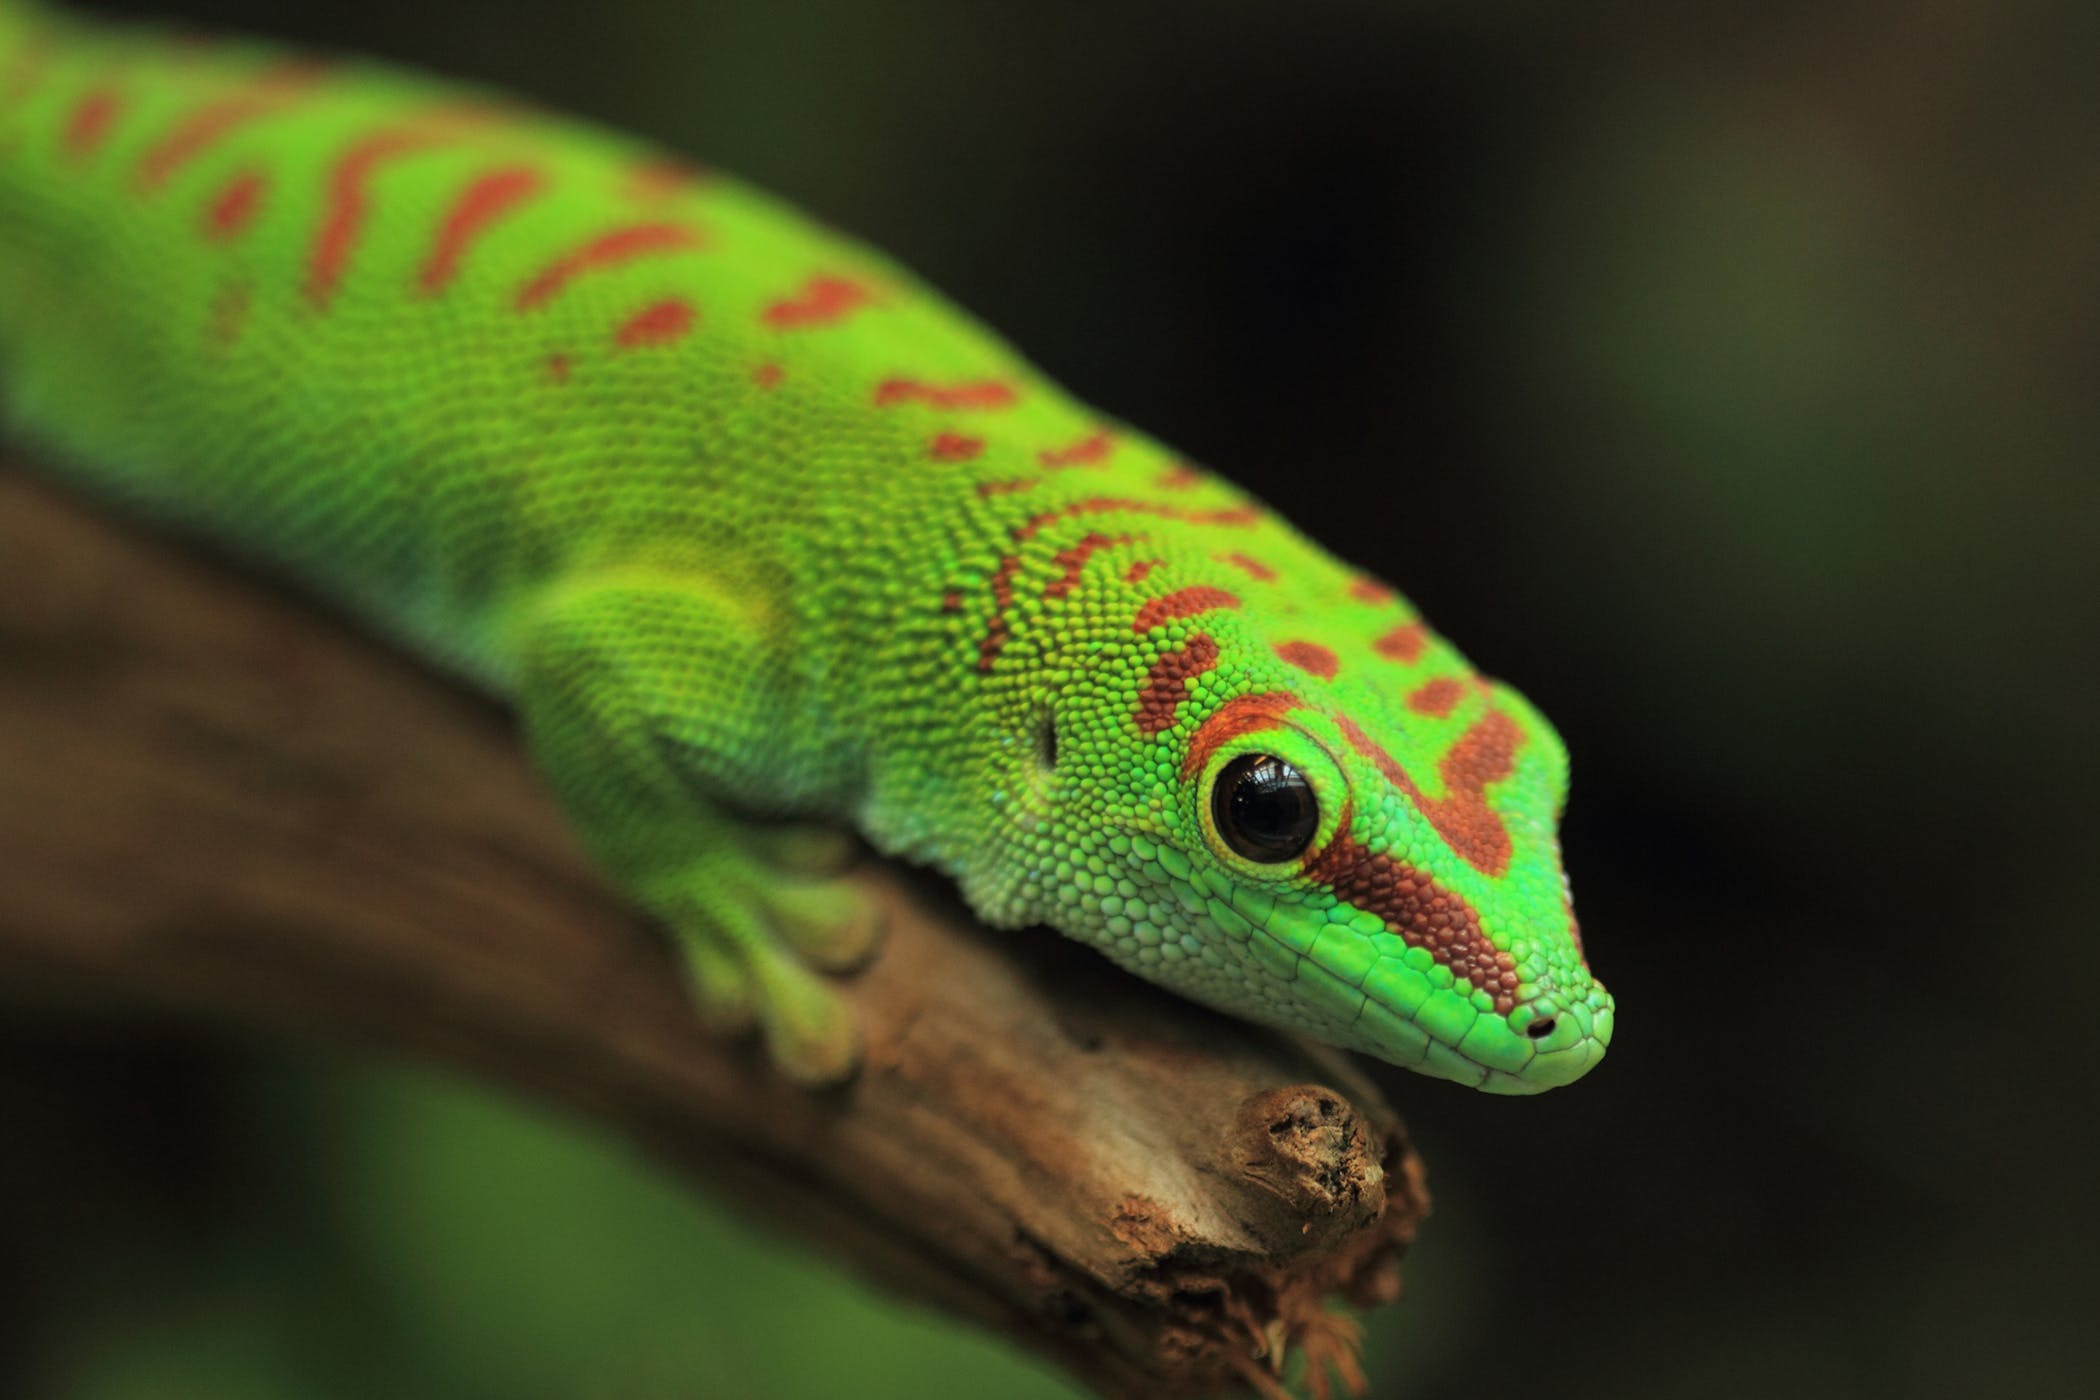 Infectious Stomatitis In Reptiles Symptoms Causes